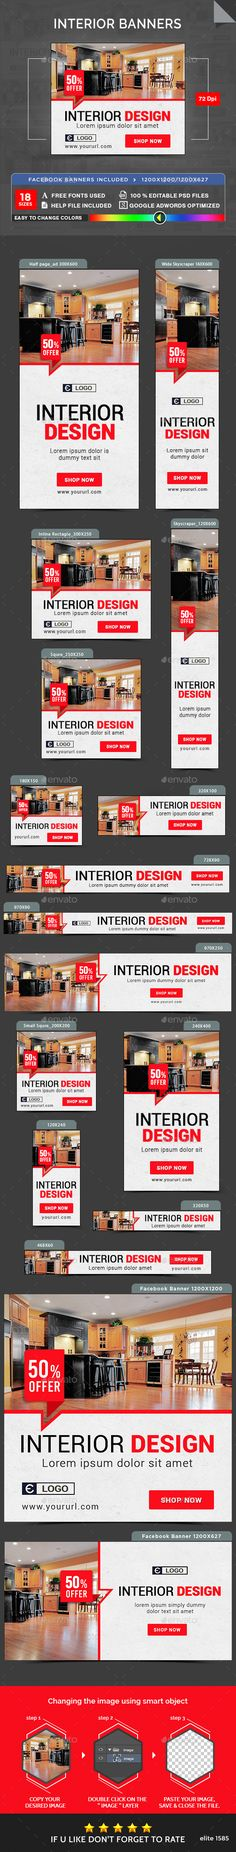 Interior Banners Template PSD. Download here: http://graphicriver.net/item/-interior-banners/16583936?ref=ksioks